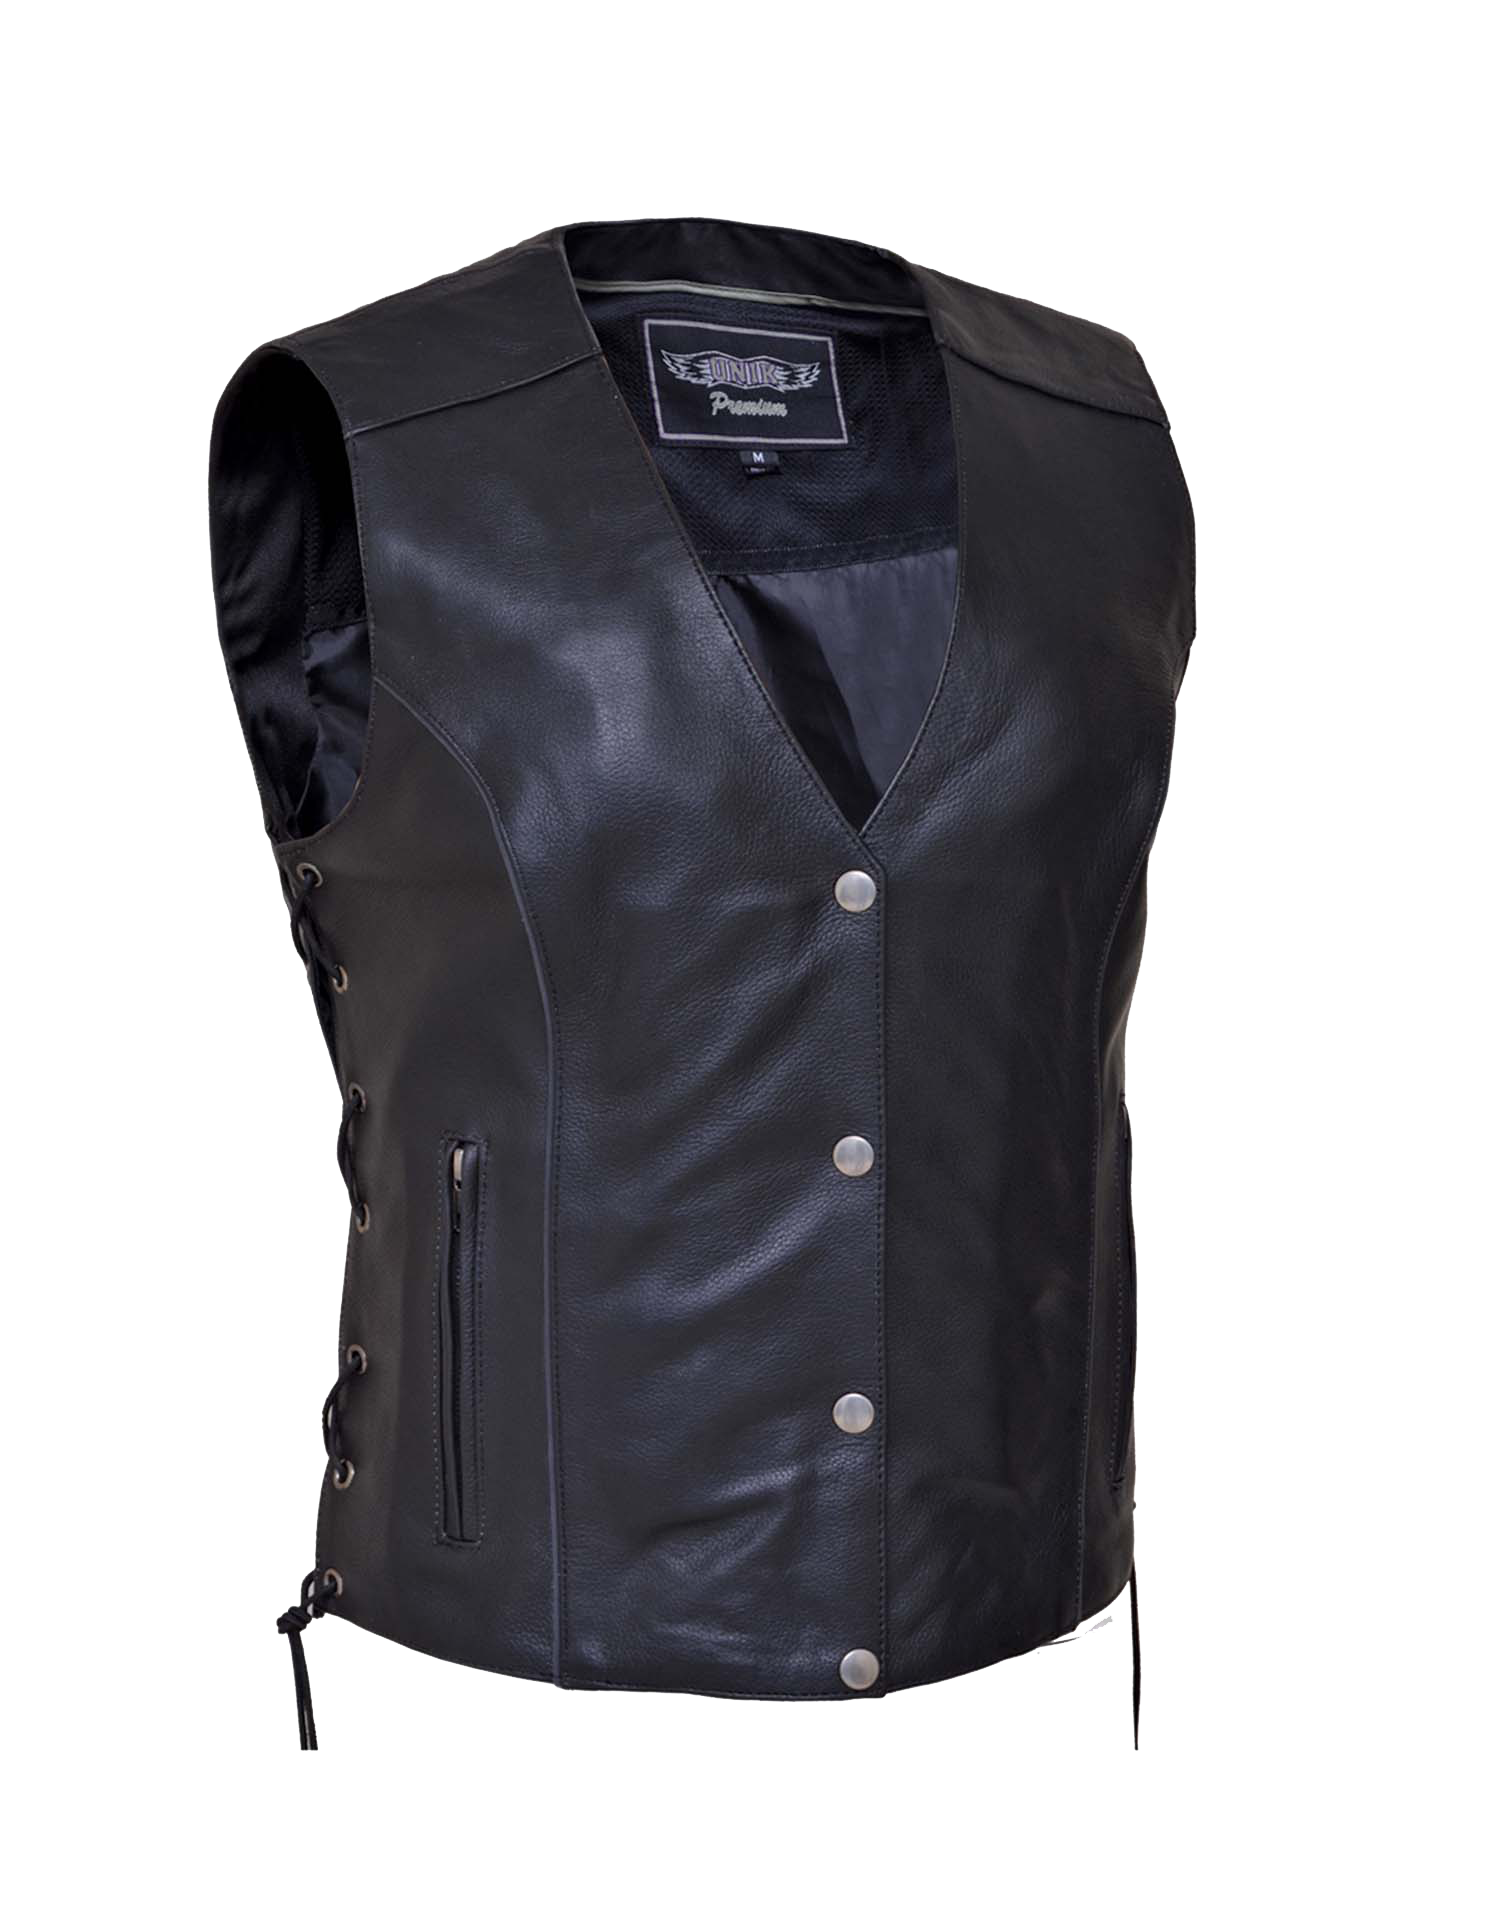 Women's Premium Leather Motorcycle Vest With Side Laces - SKU 6879-PL-UN